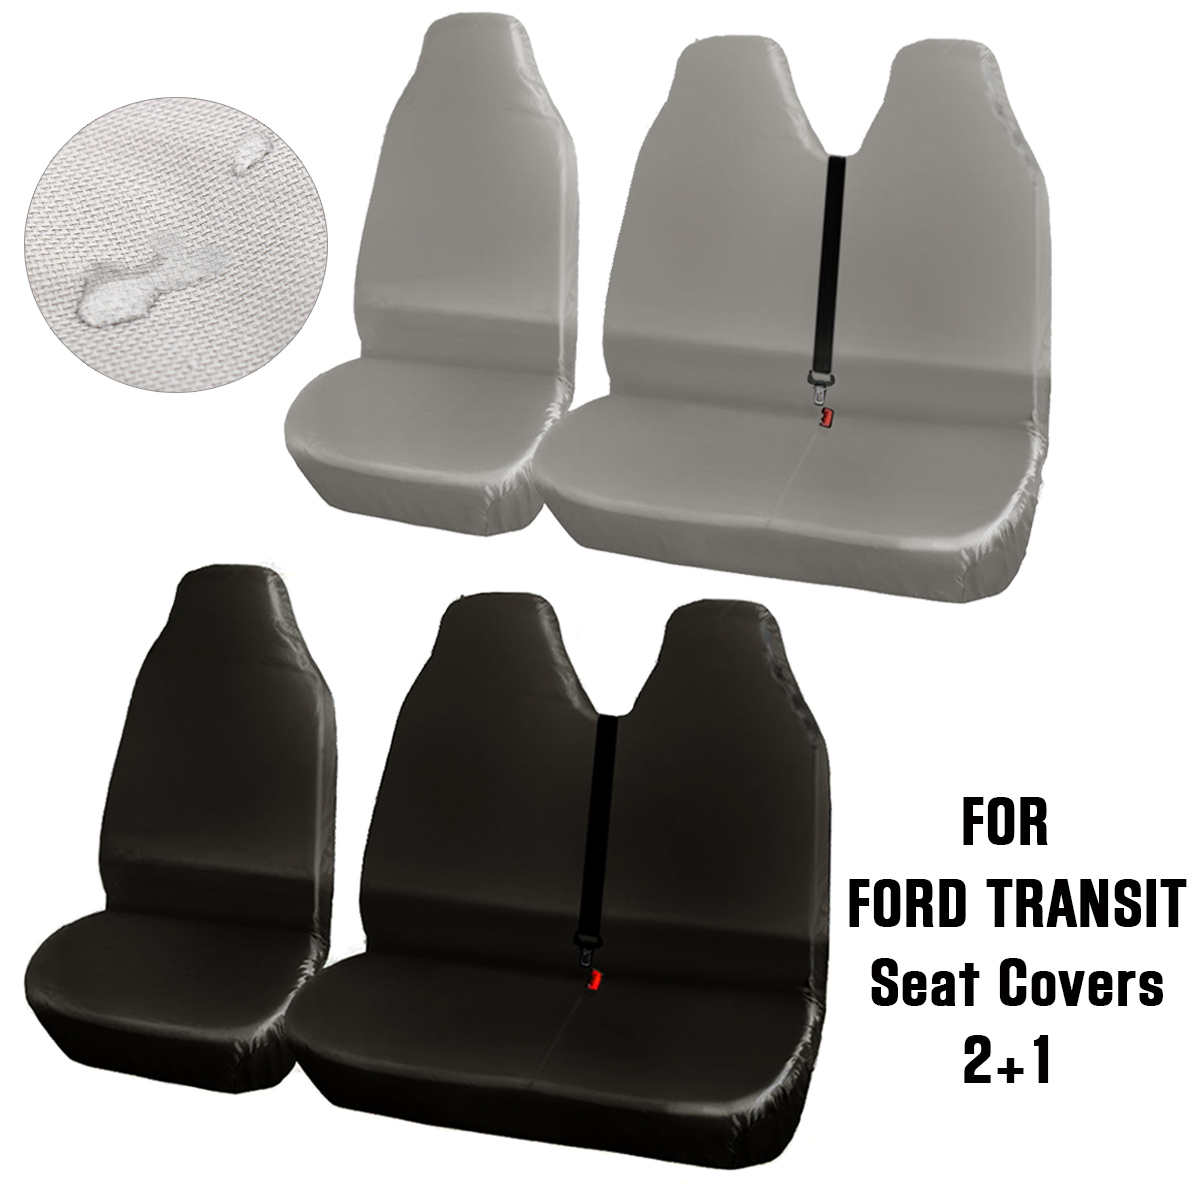 FOR FORD TRANSIT MK7 BLACK HEAVY DUTY WATERPROOF VAN SEAT COVERS 2+1